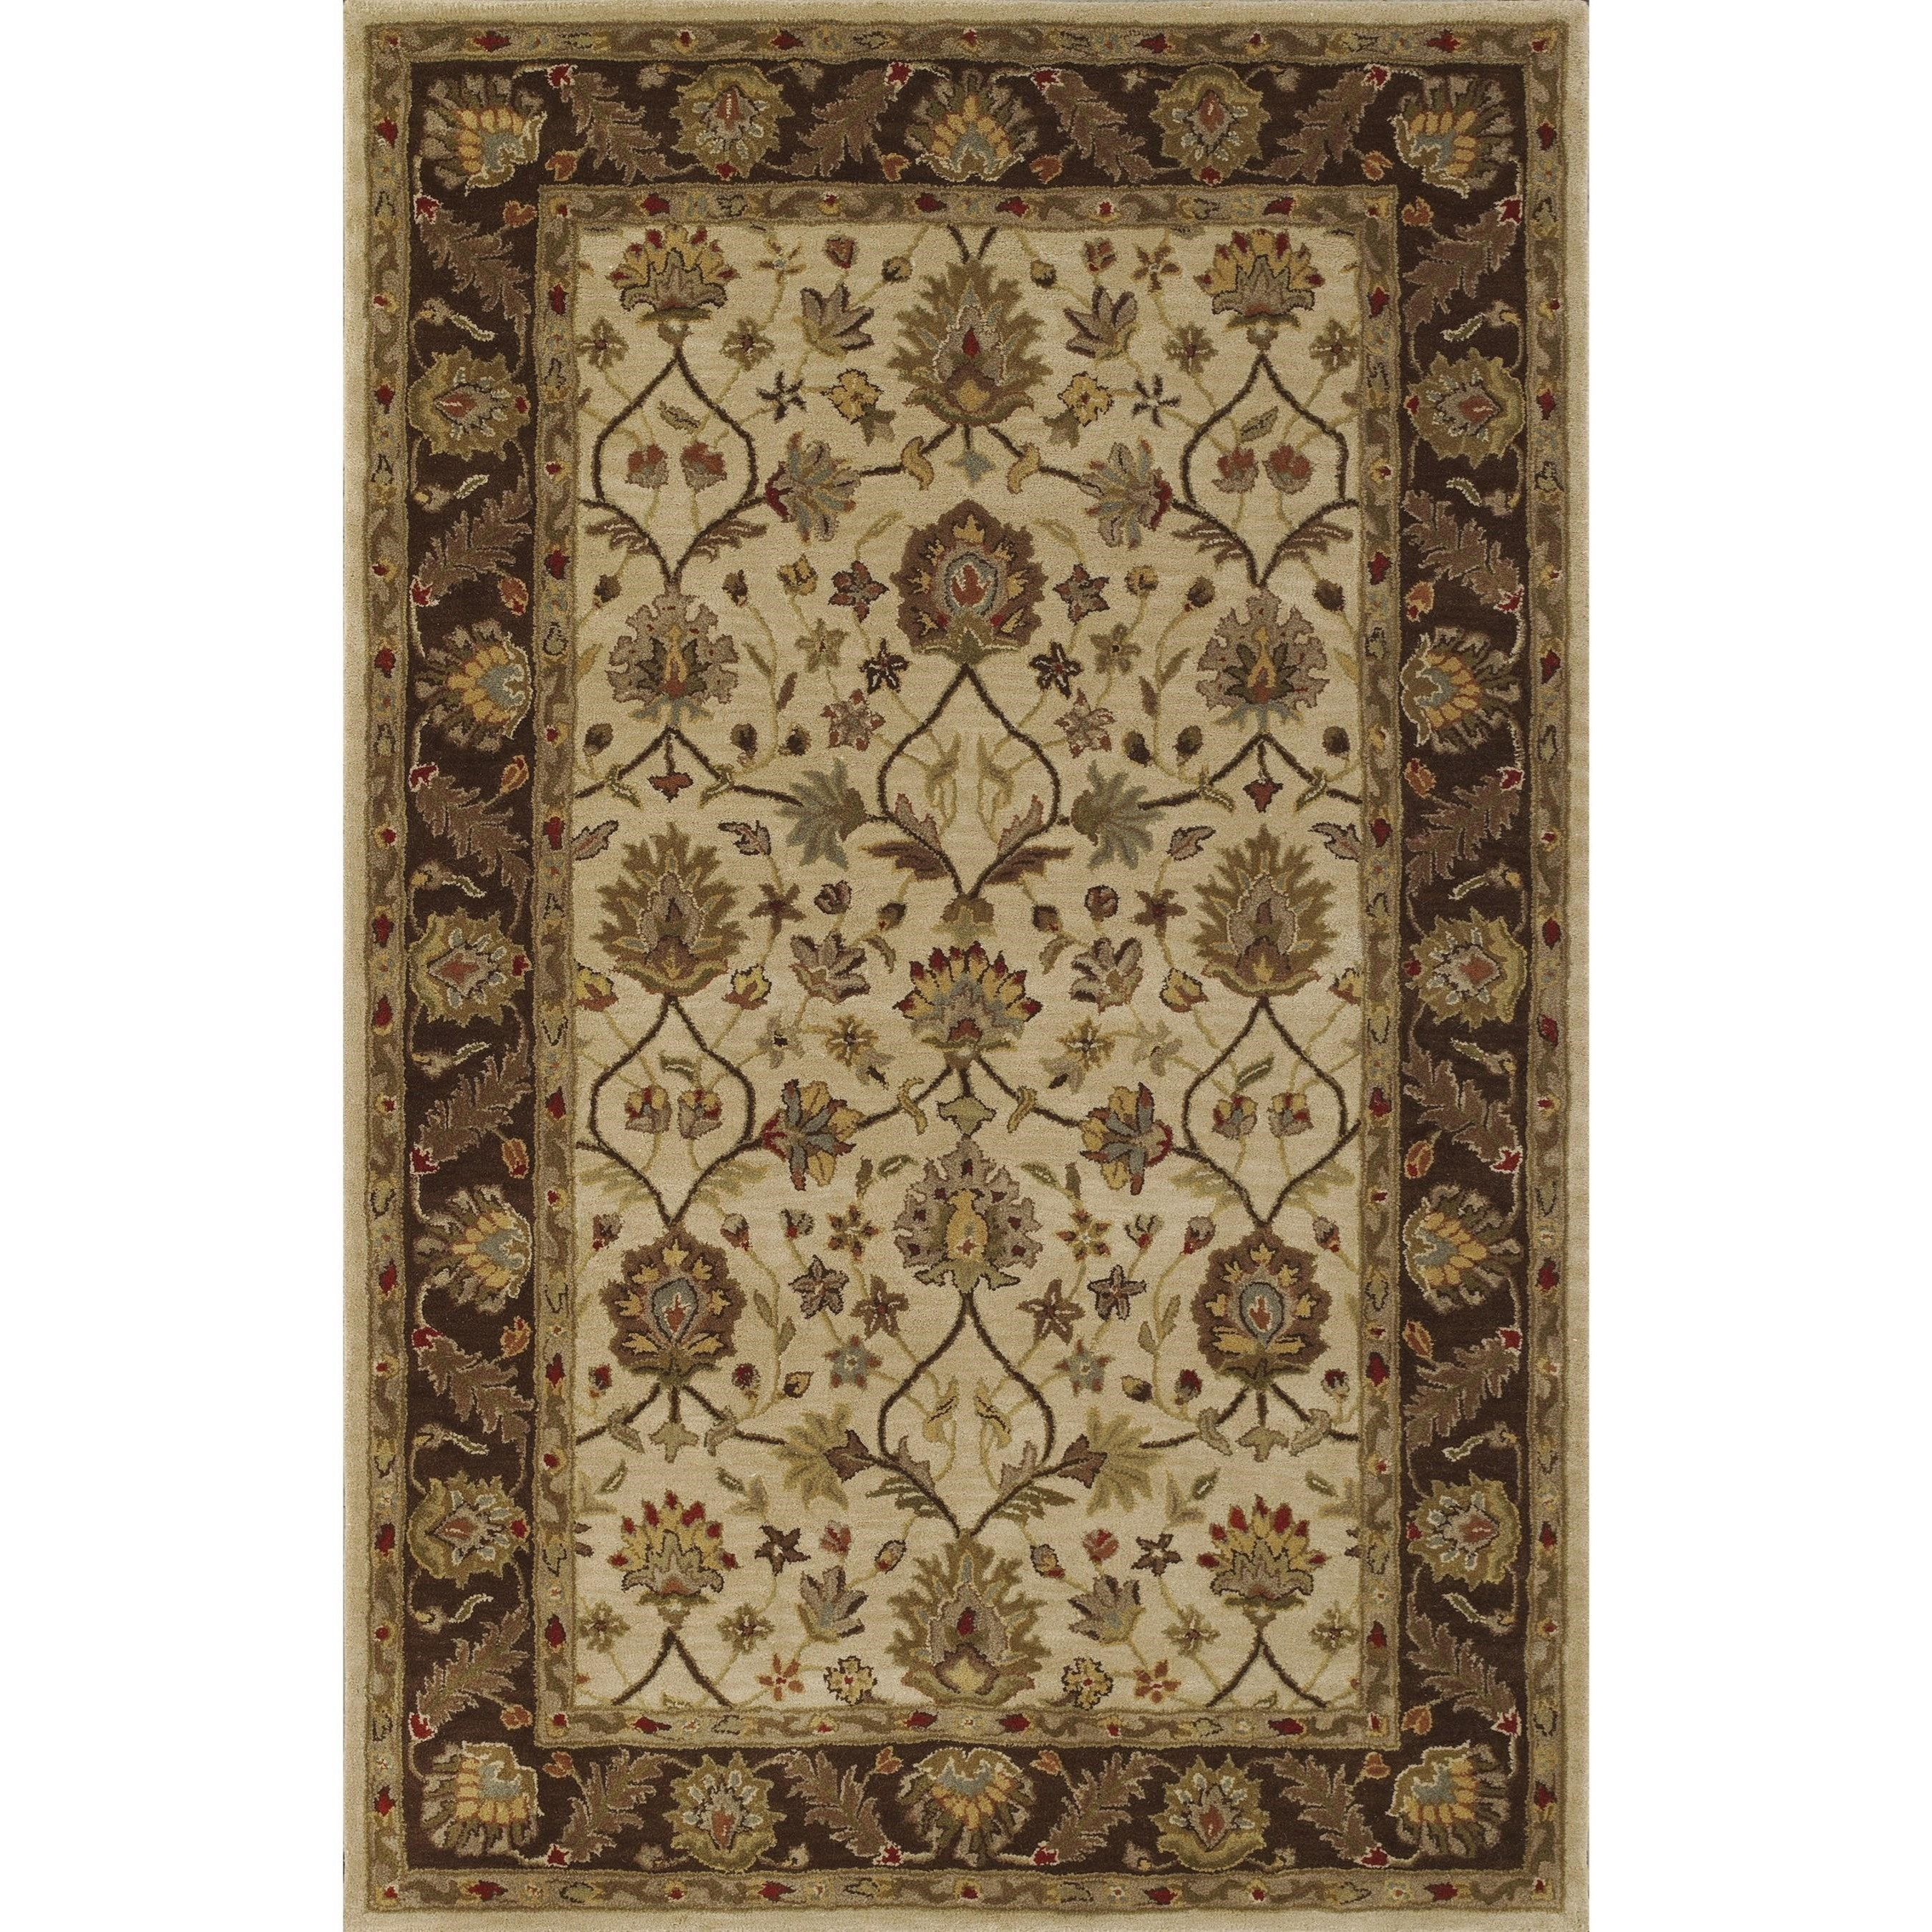 Dalyn Jewel Ivory/Chocolate 5'X8' Rug - Item Number: JW33IV-CH5X8